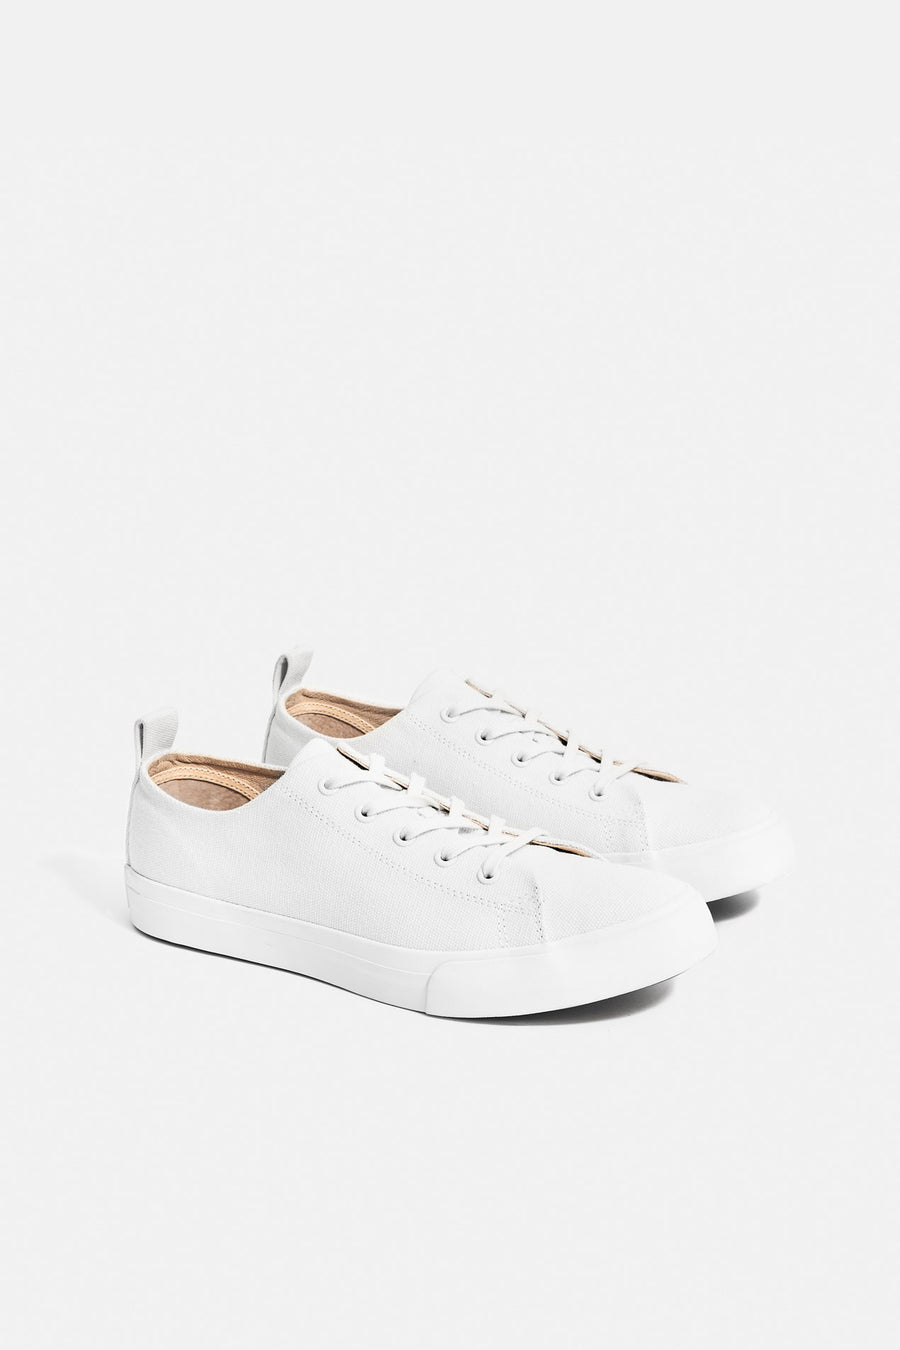 Mike Low-Top Sneakers White - Pavilion